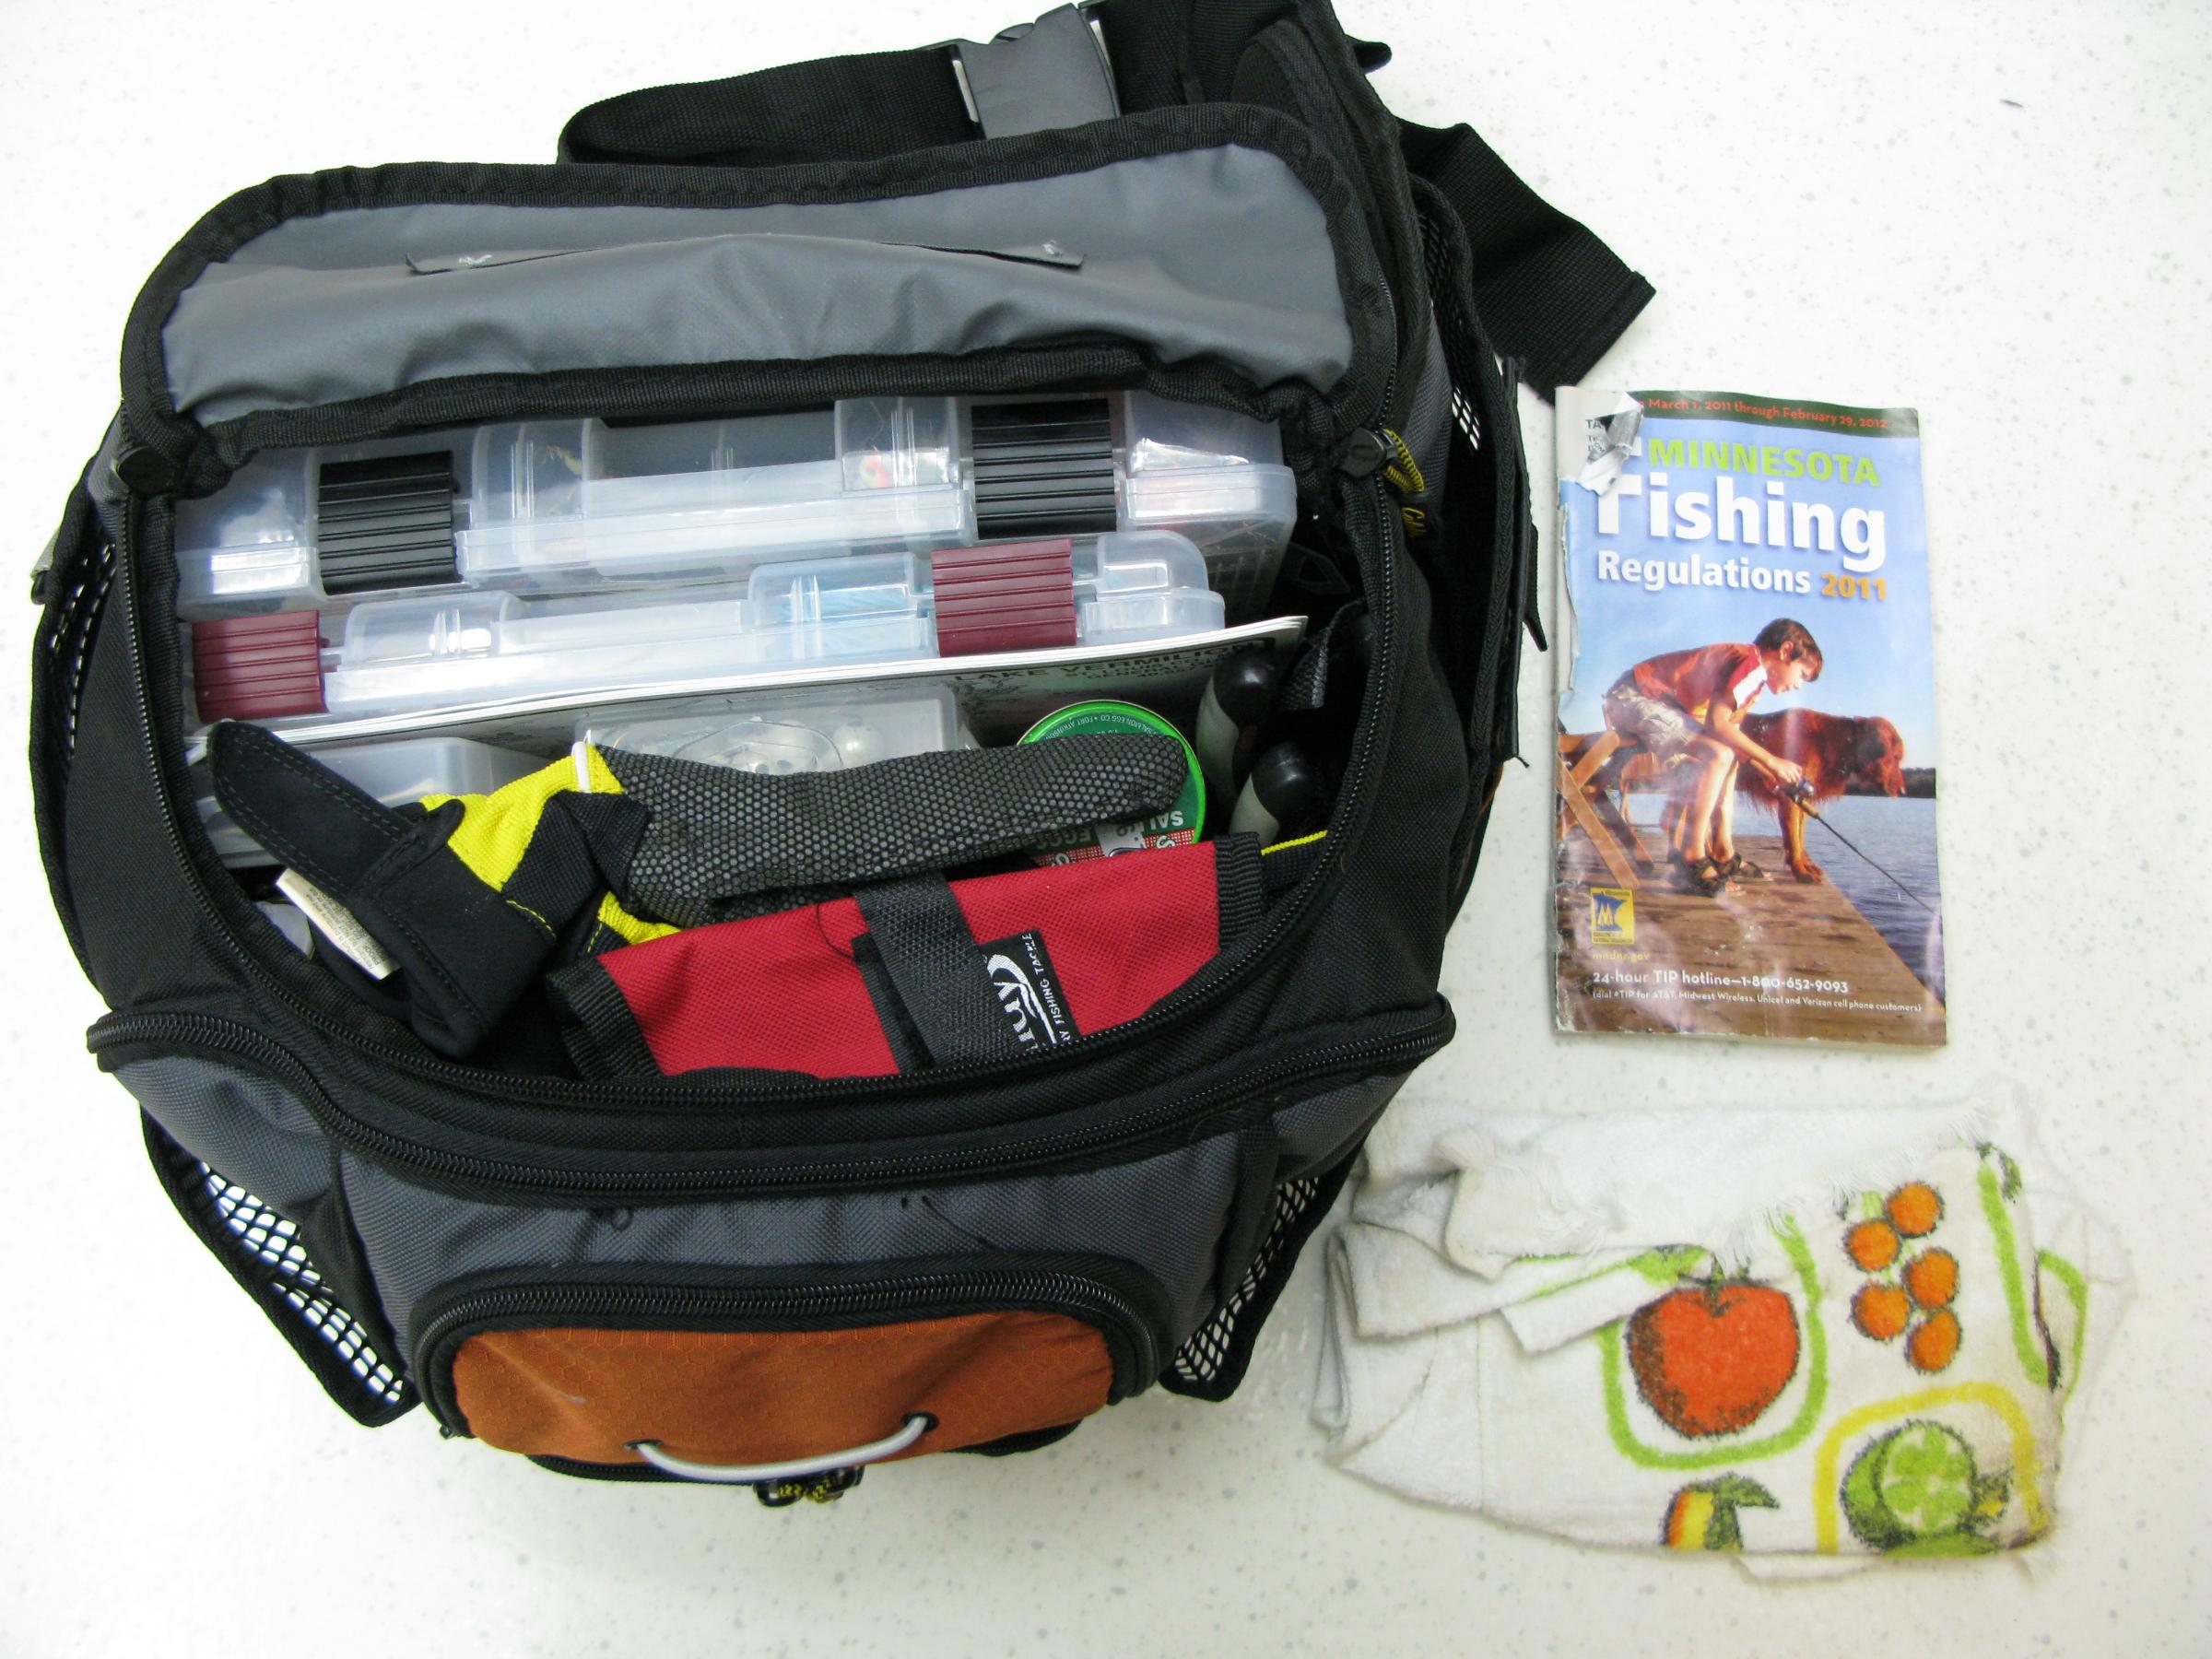 0430-XPG pack - Main compartment